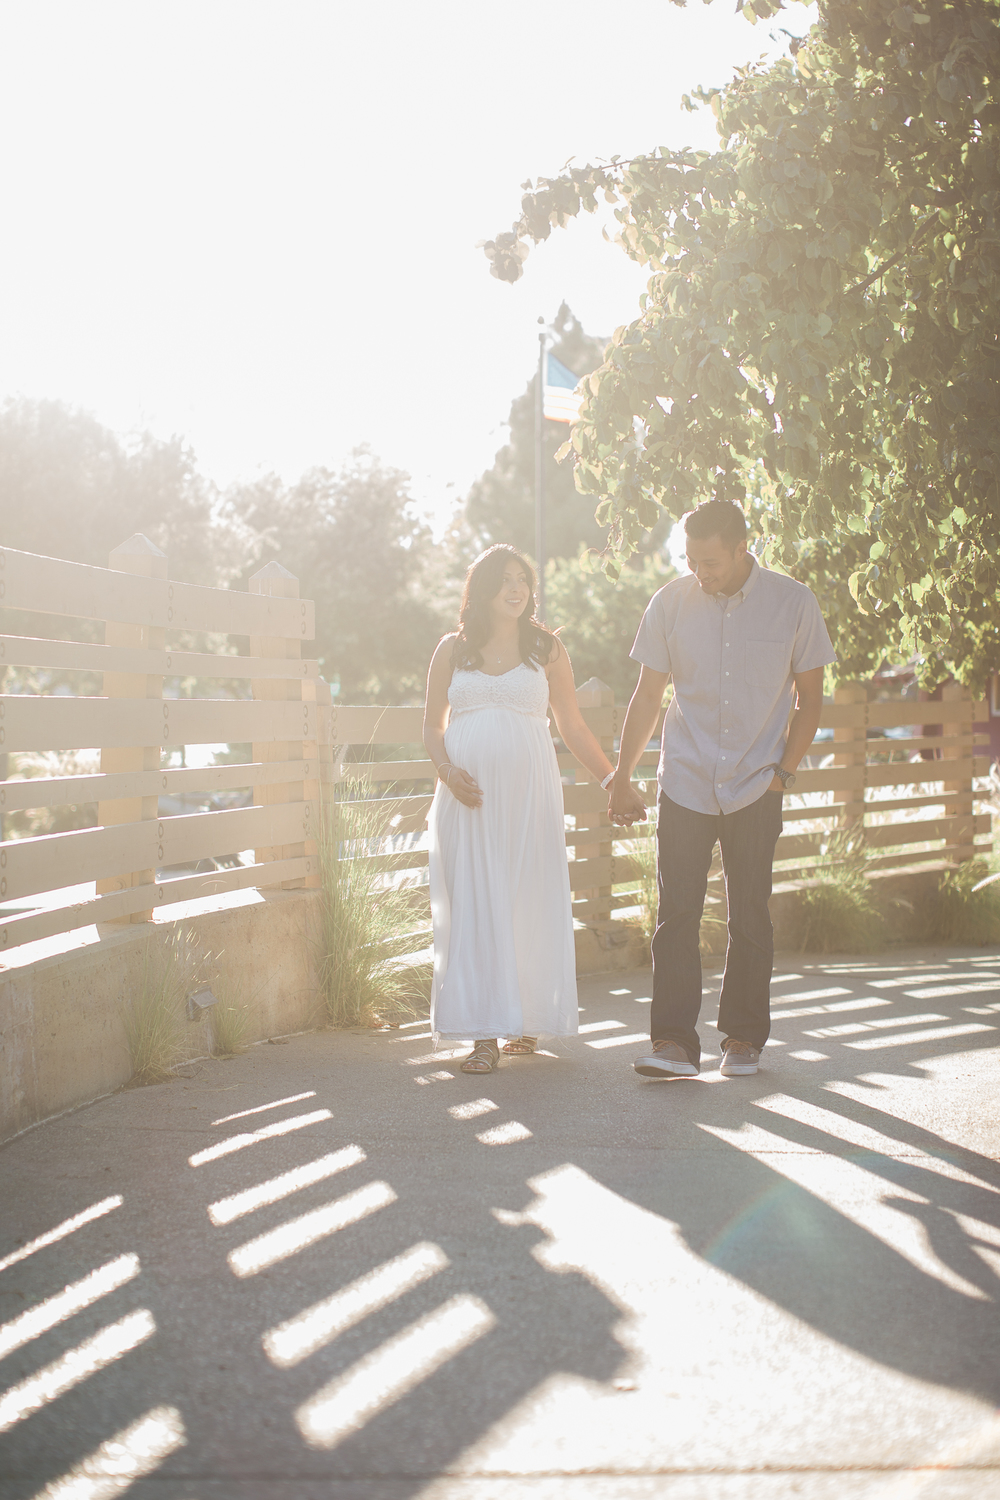 Marcella_Maternity_Cerritos_BrandonJFerlin_Photography-24.jpg